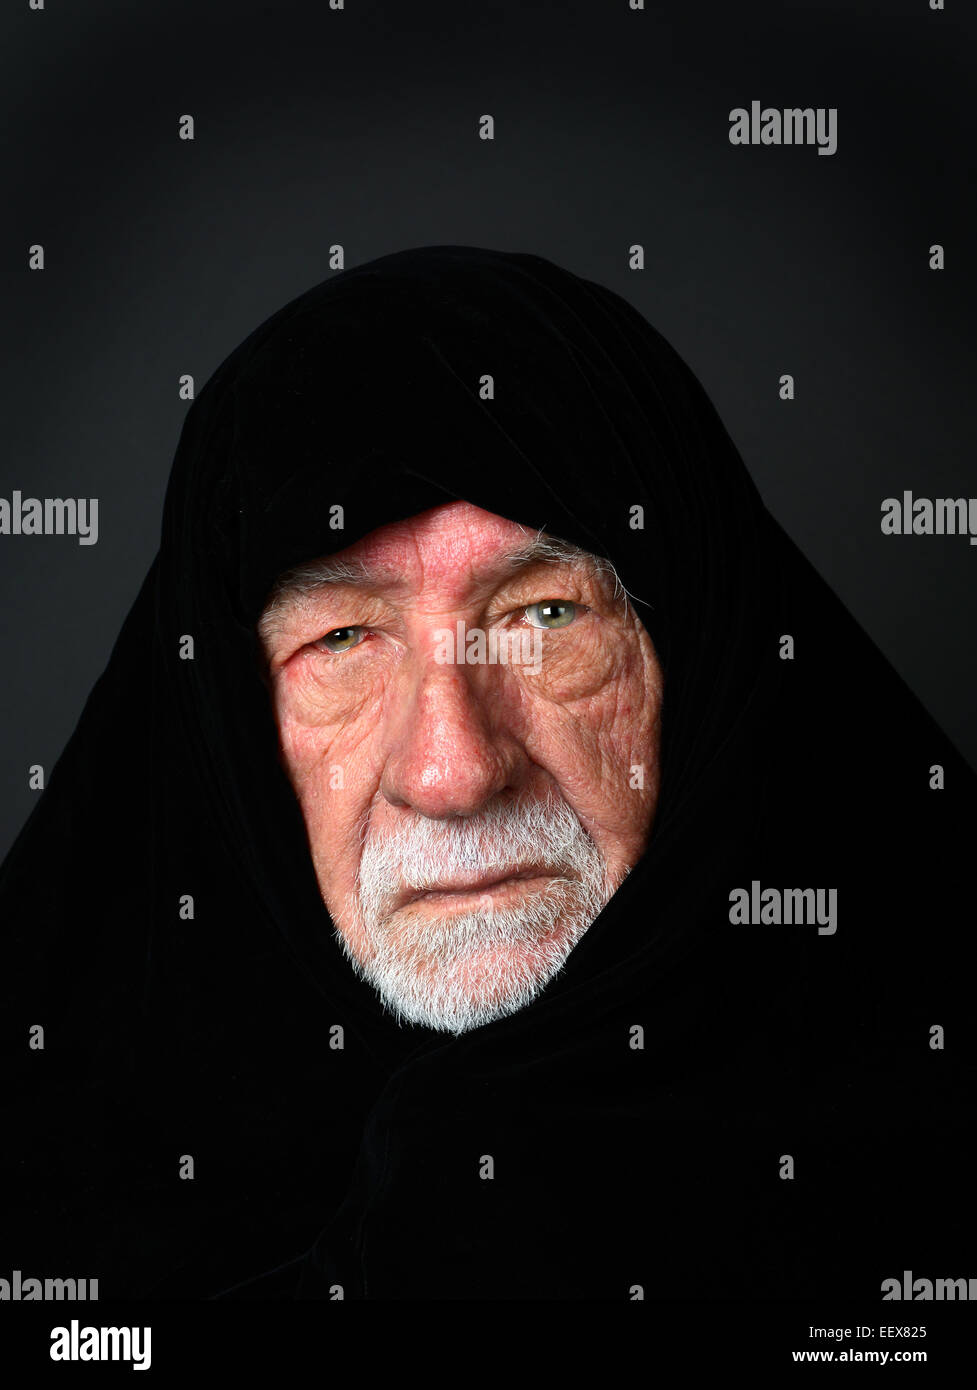 Elder Arab Sheik with a somber expression with a black headdress looking directly into the camera - Stock Image